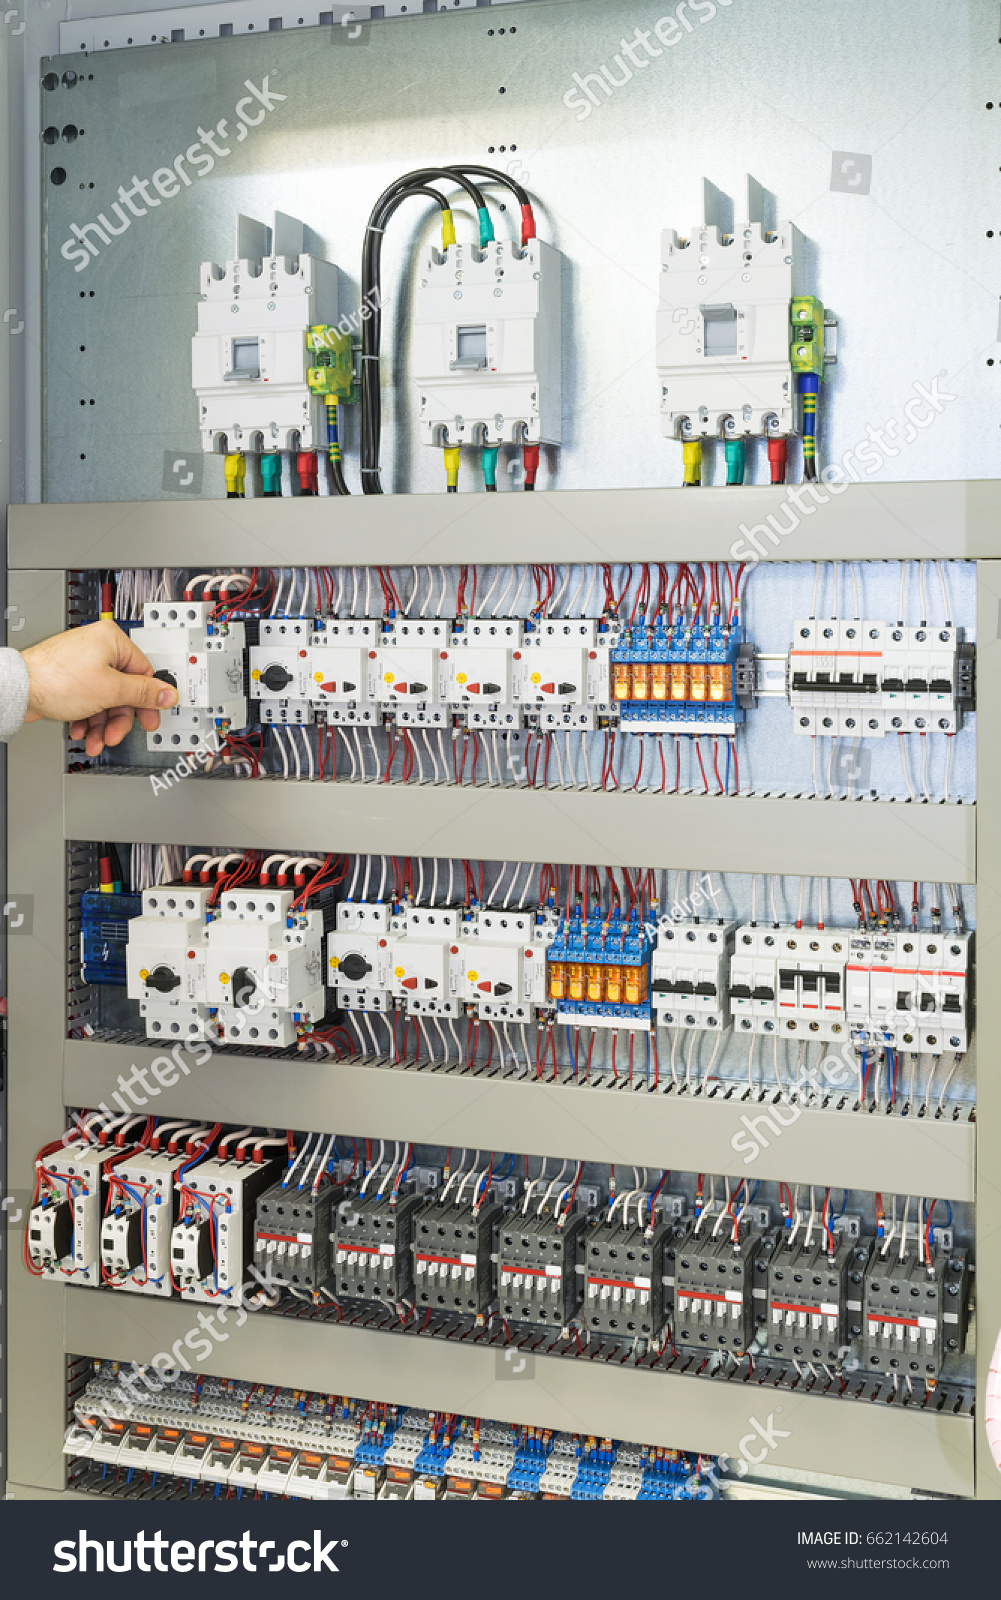 Man Turns Off Circuit Breaker Protecting Stock Photo Edit Now Thermal Breakers Trip And Turn The If Current Motor In An Electric Cabinet Or Panel